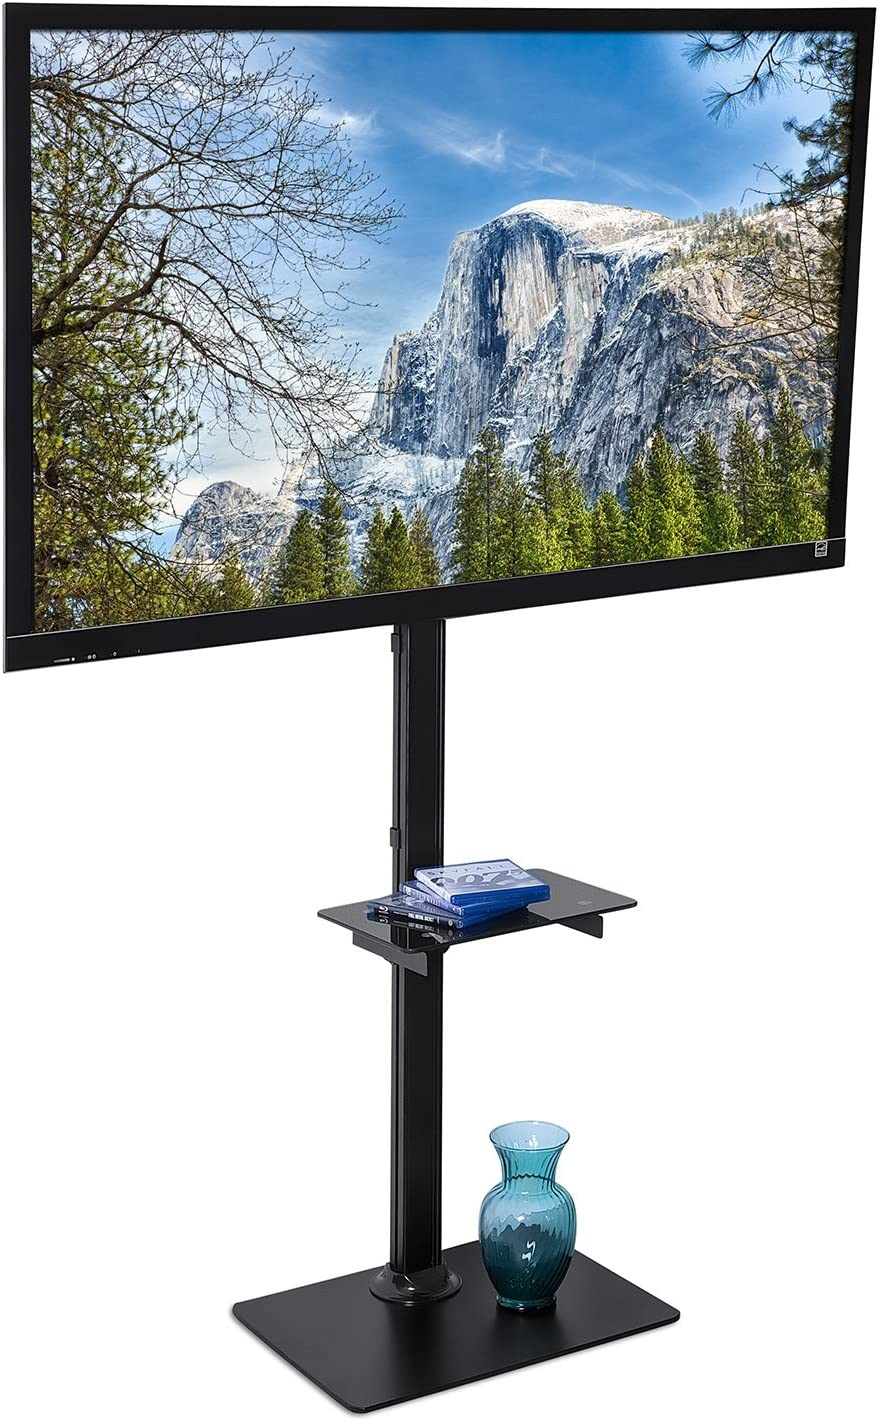 Amazon Com Mount It Portable Tv Floor Stand With Mount Tall Pedestal Television Stand With Free Standing Base Ideal For Presentations Tradeshows Outdoors Home And Office Use Fits Up To 70 Inch Screens Electronics